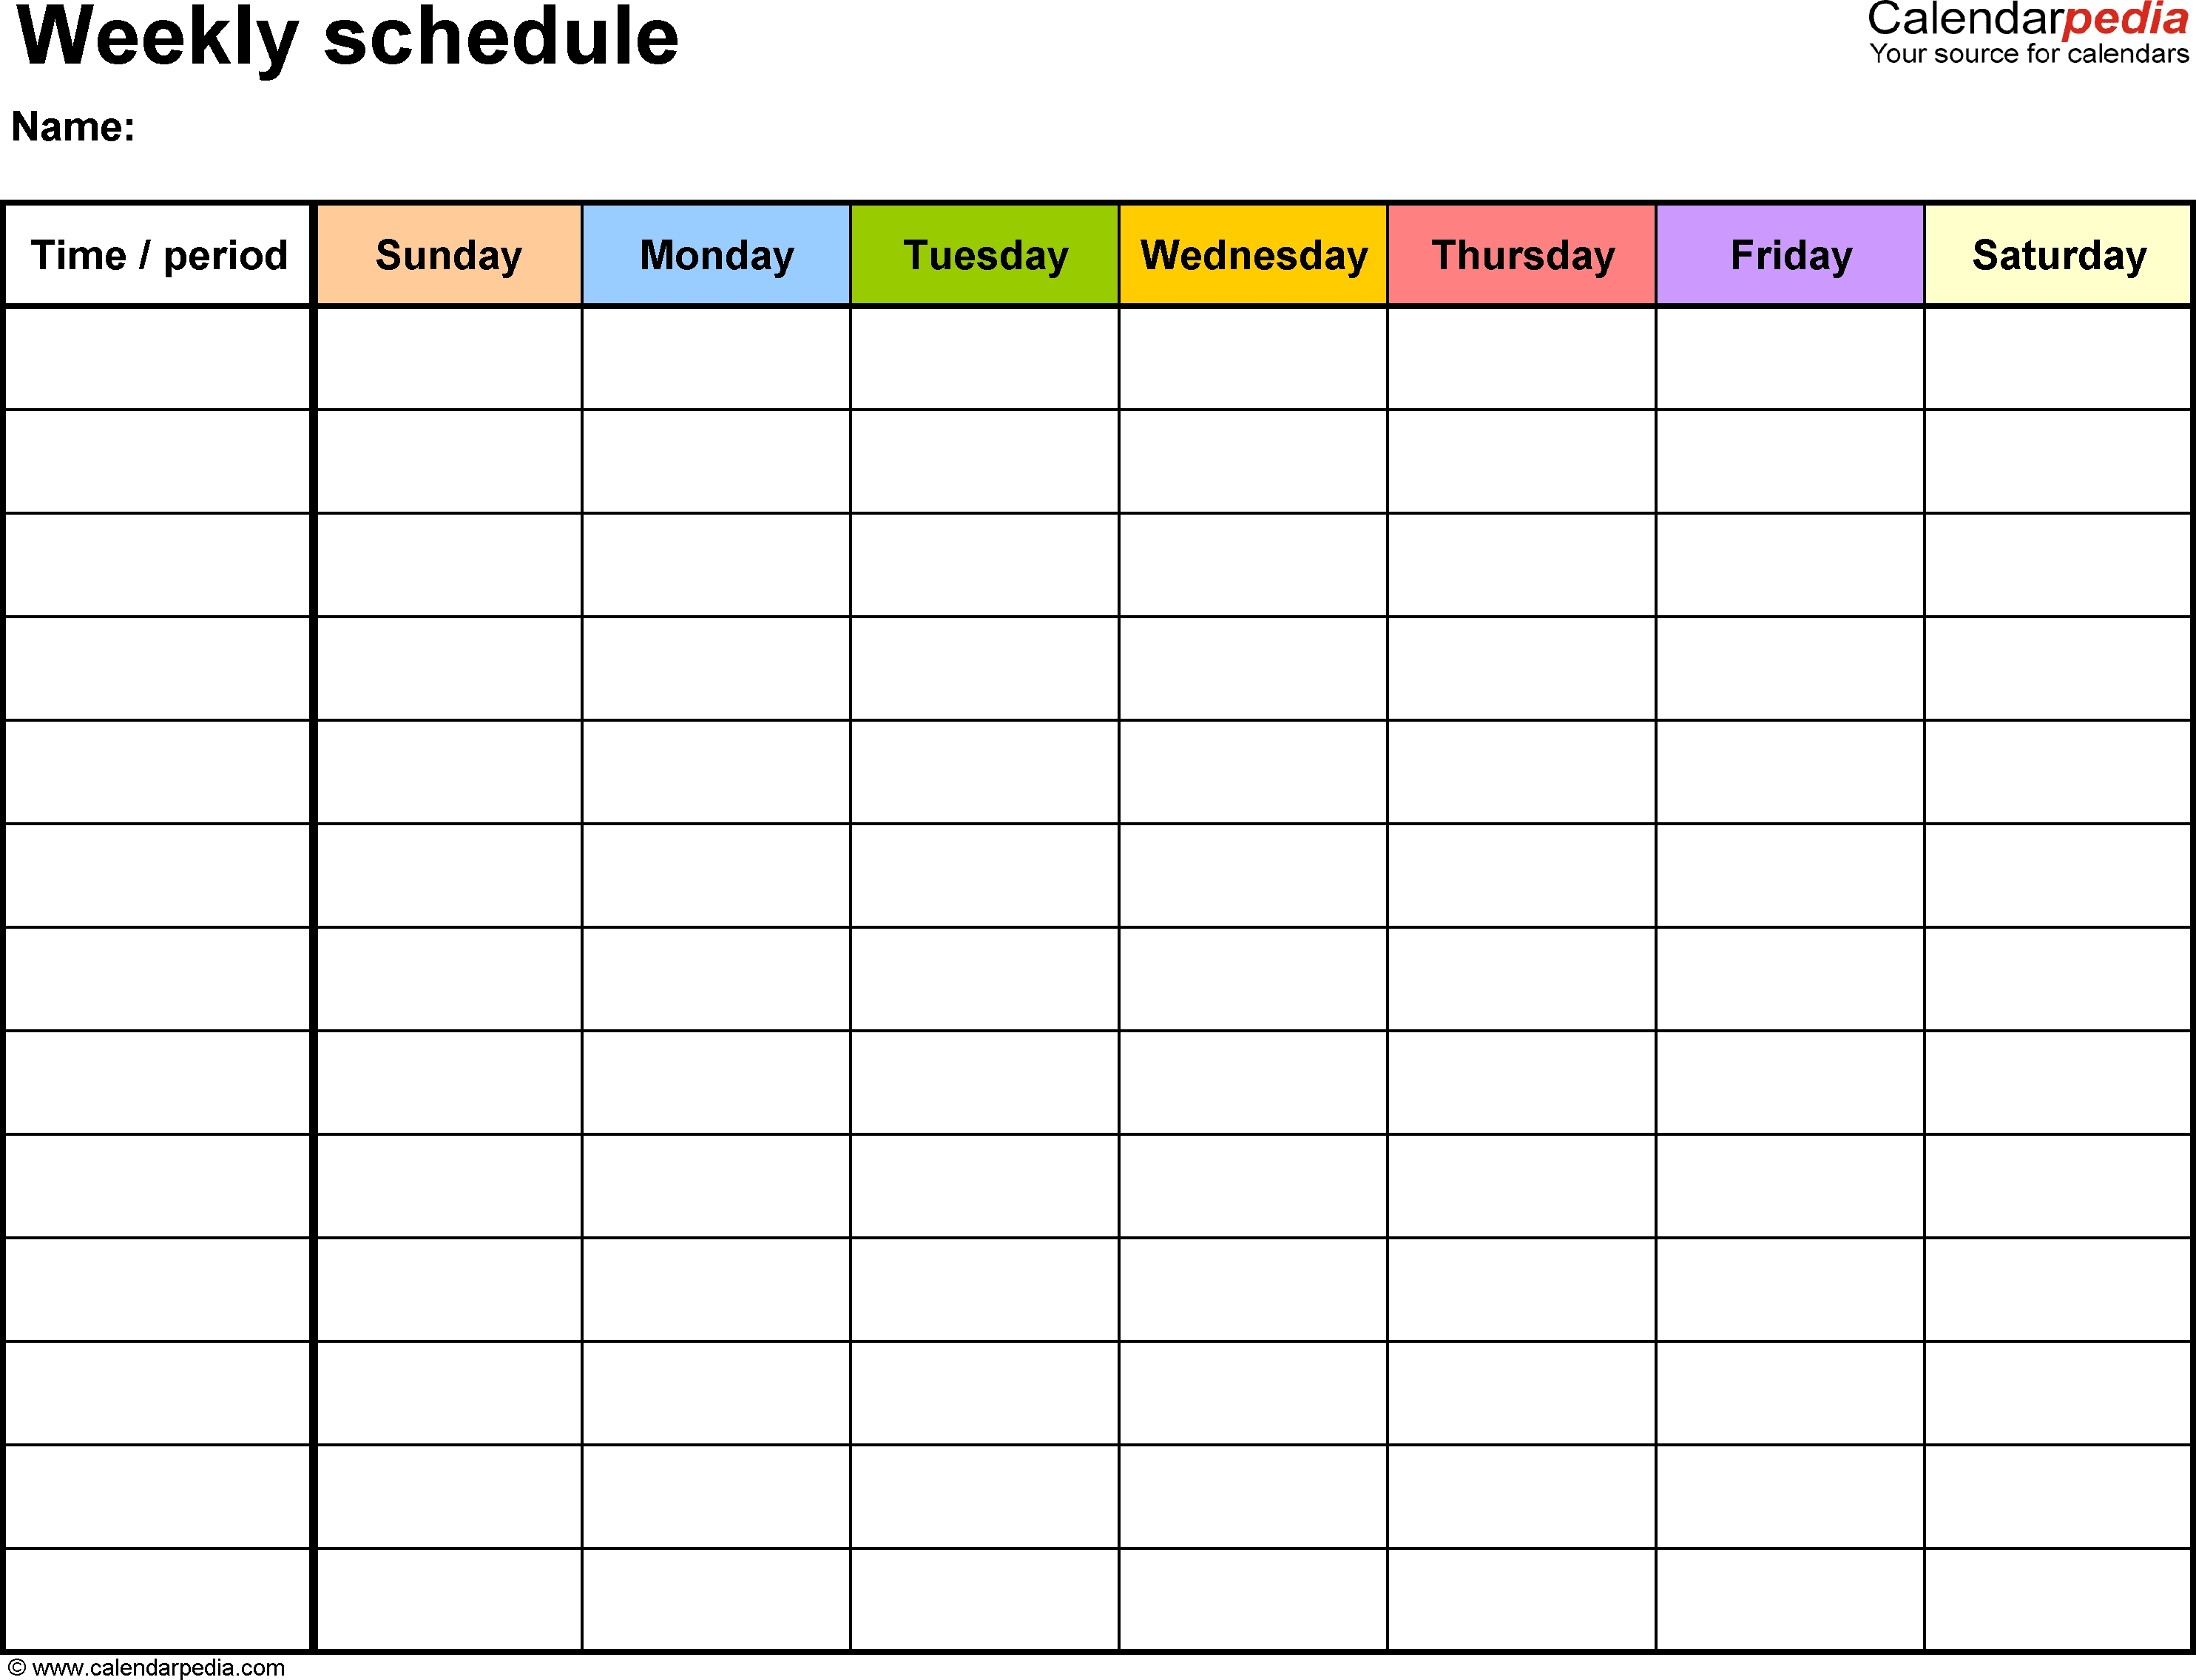 Free Weekly Schedule Templates For Pdf - 18 Templates for Free Printable Weekly Planner Calendar Template